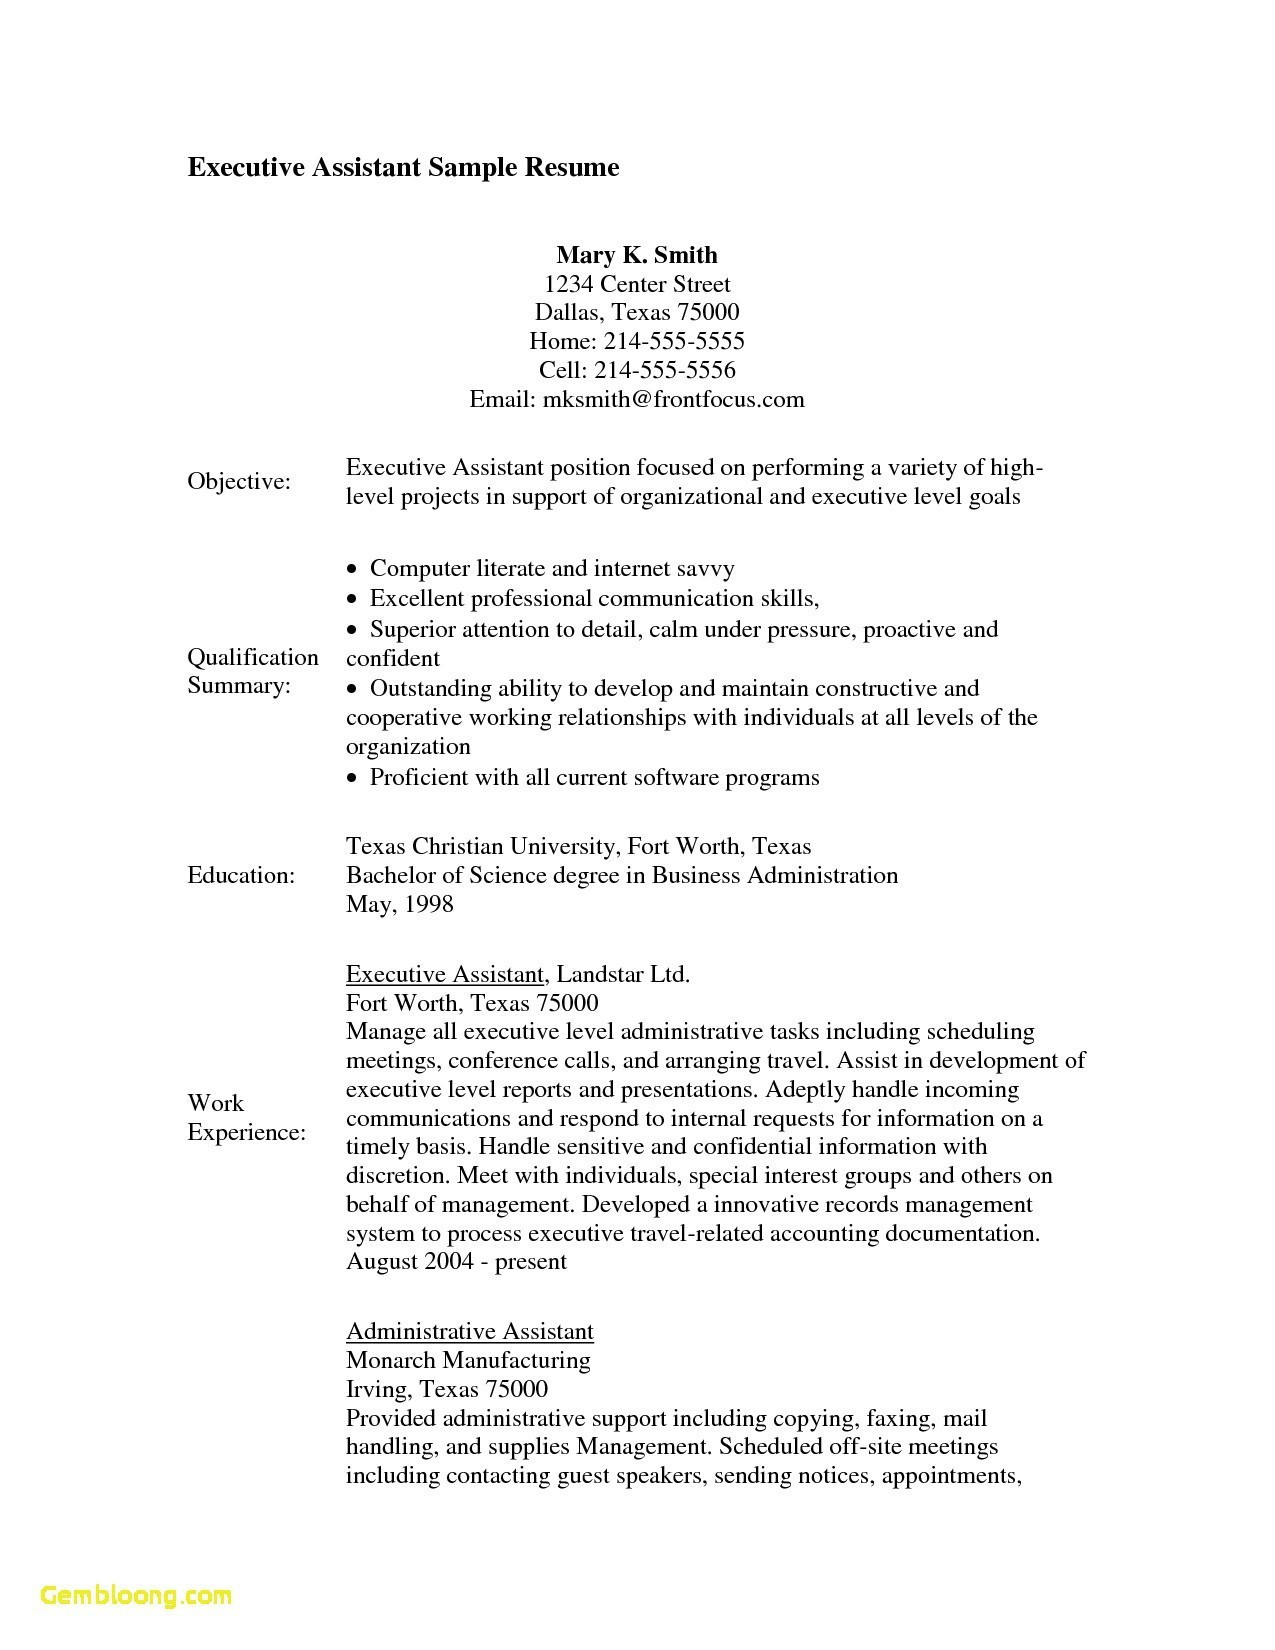 Resume Template for Medical assistant - Medical assistant Resume New Inspirational Medical assistant Resumes